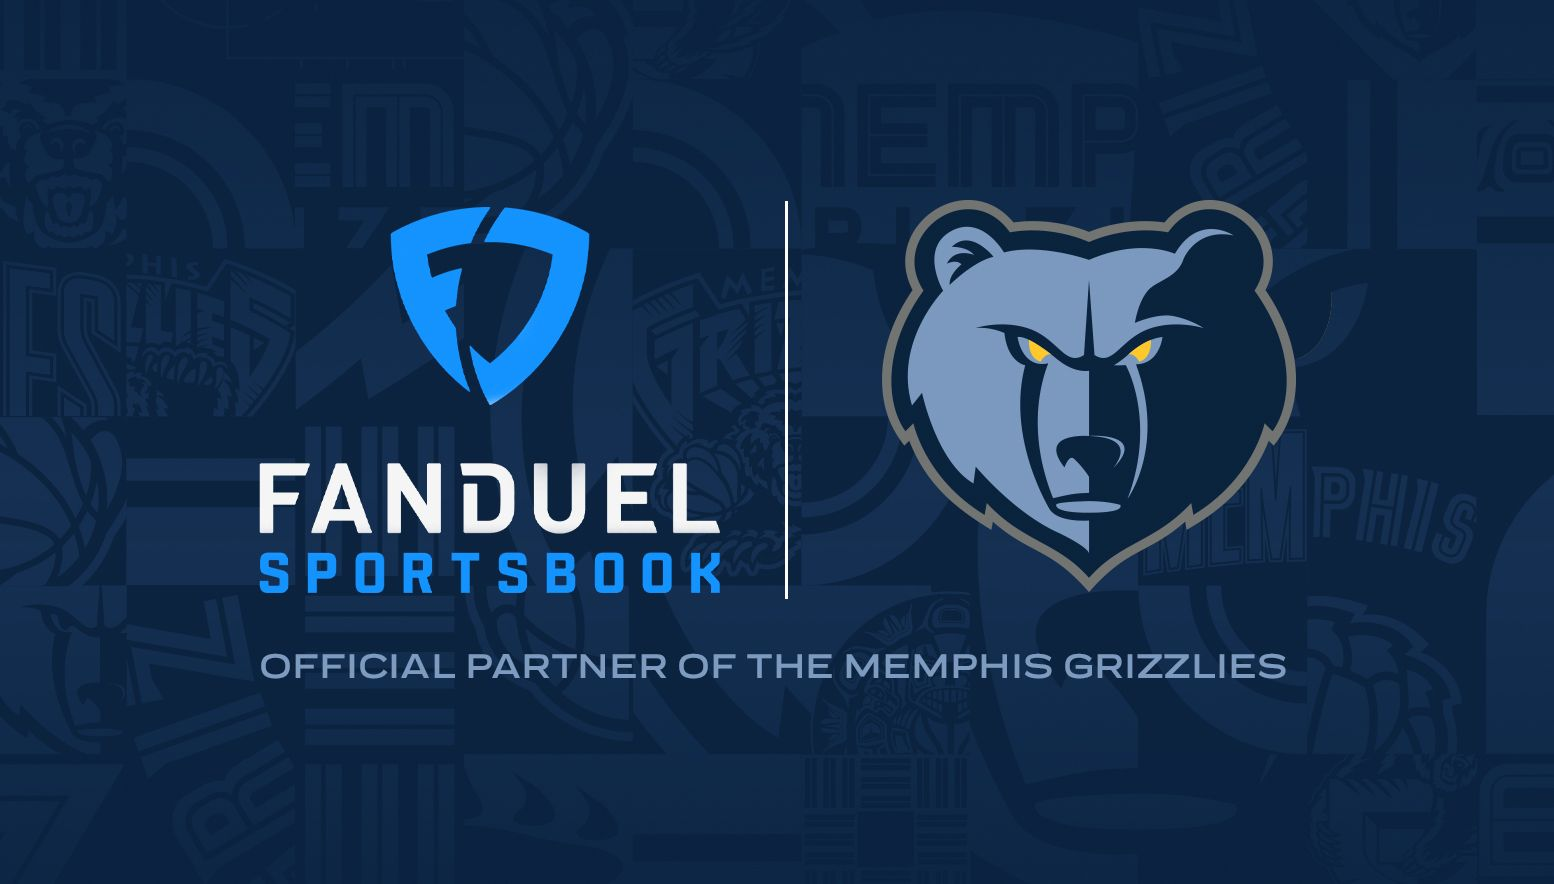 fanduel_sports_betting_header_1554x884